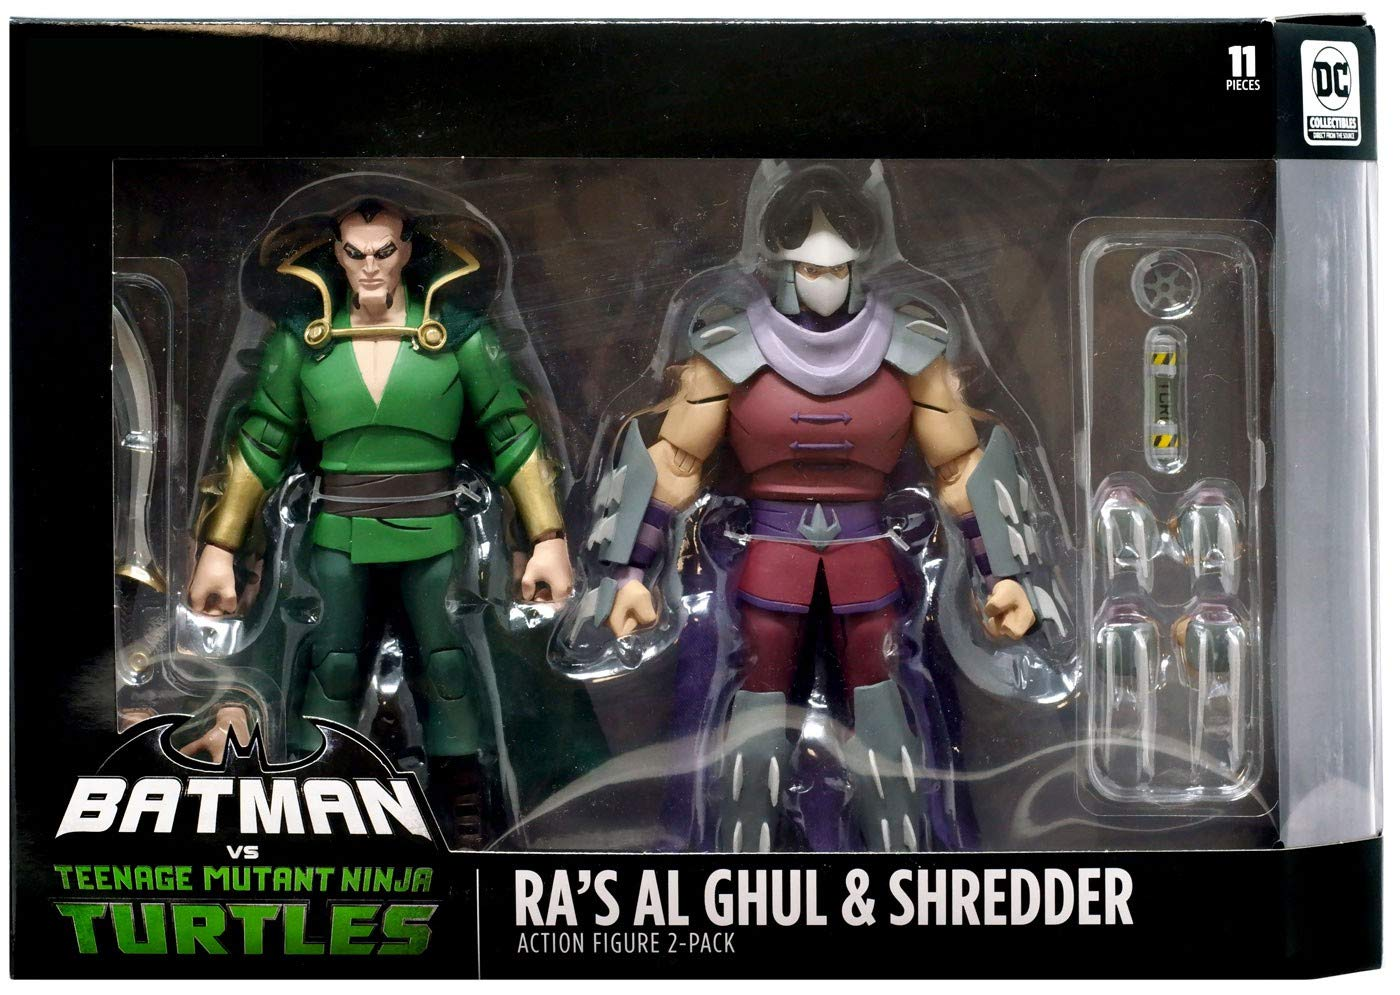 DC Collectibles Batman Vs Teenage Mutant Ninja Turtles - Ra's Al Ghul & Shredder Figure 2 Pack Exclusive